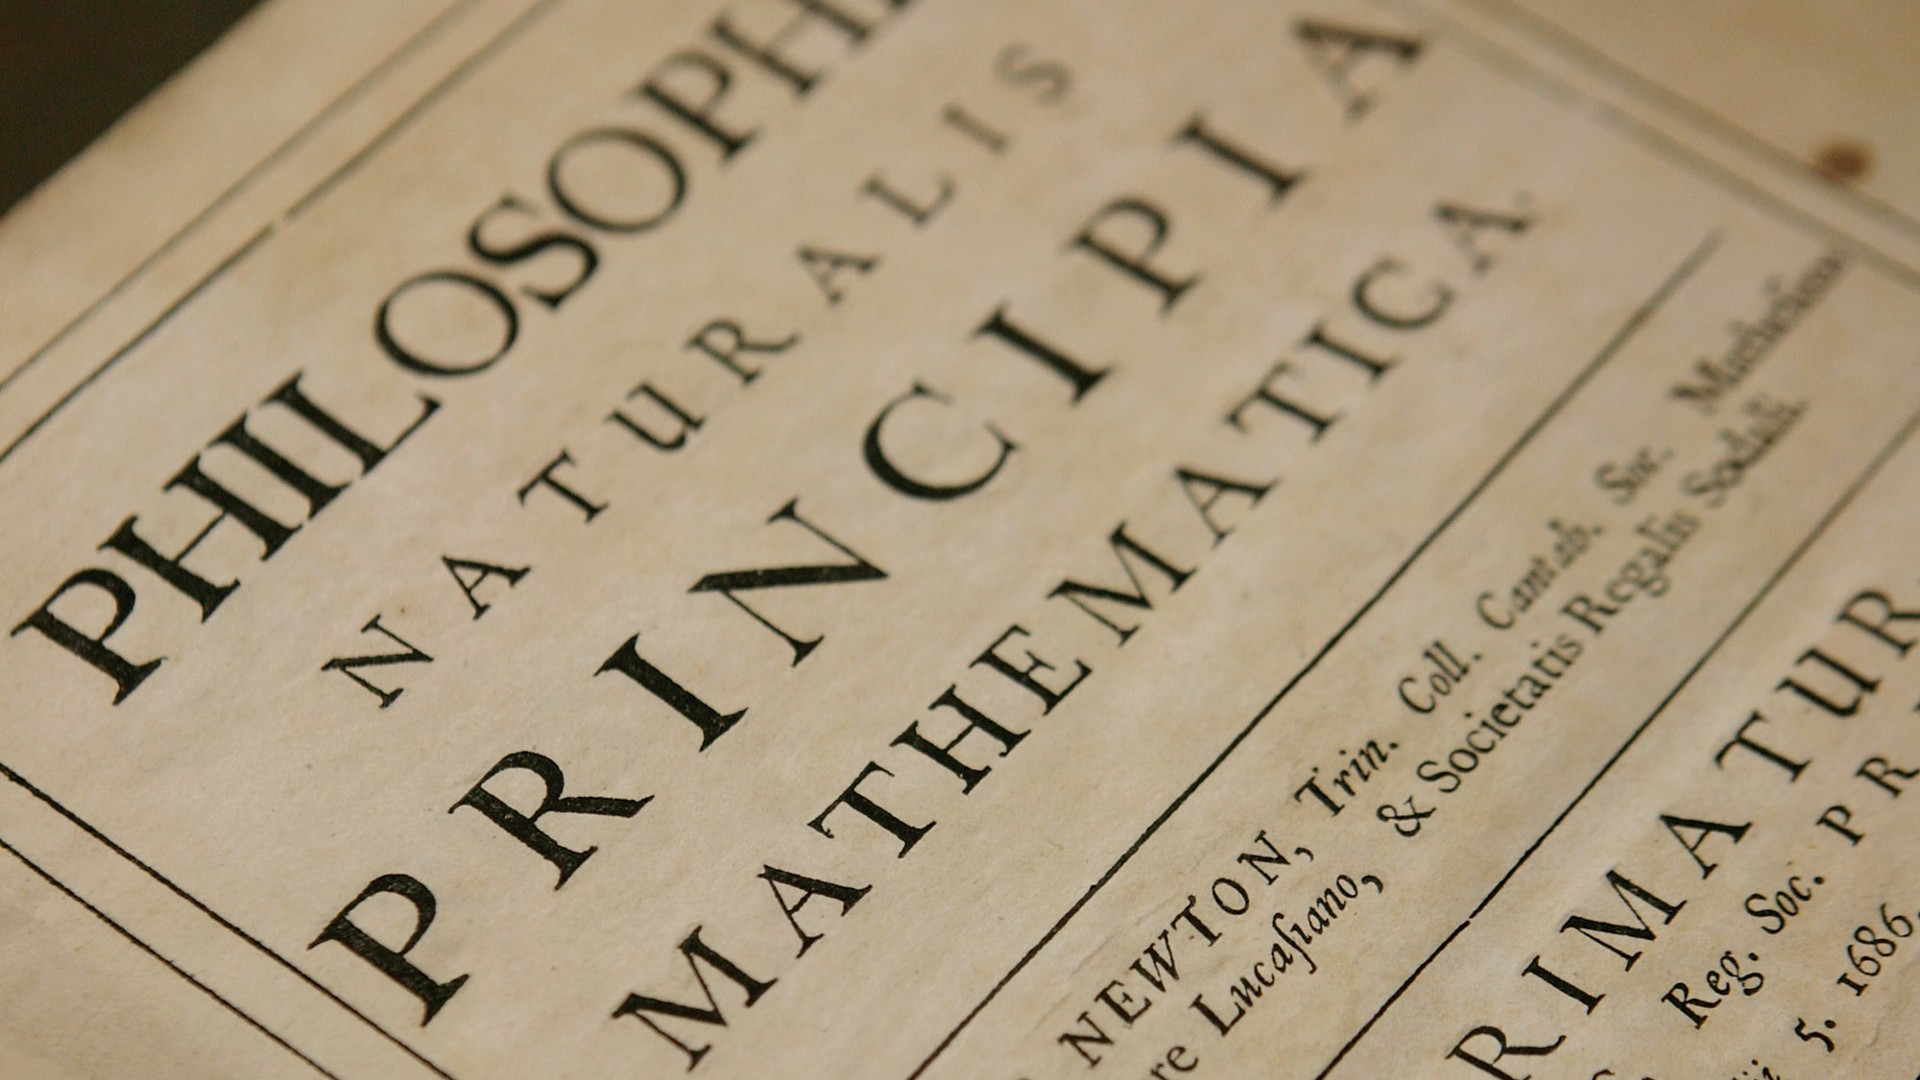 In this photo illustration, Head of Library and Archives Rupert Williams (unseen) holds a copy Philosphiae Naturalis Principia Mathematica (one of the most important scientific works ever written) by Sir Isaac Newton at the Science Museum Library and Archives on March 11, 2008 in Swindon, England. (Daniel Berehulak/Getty Images)